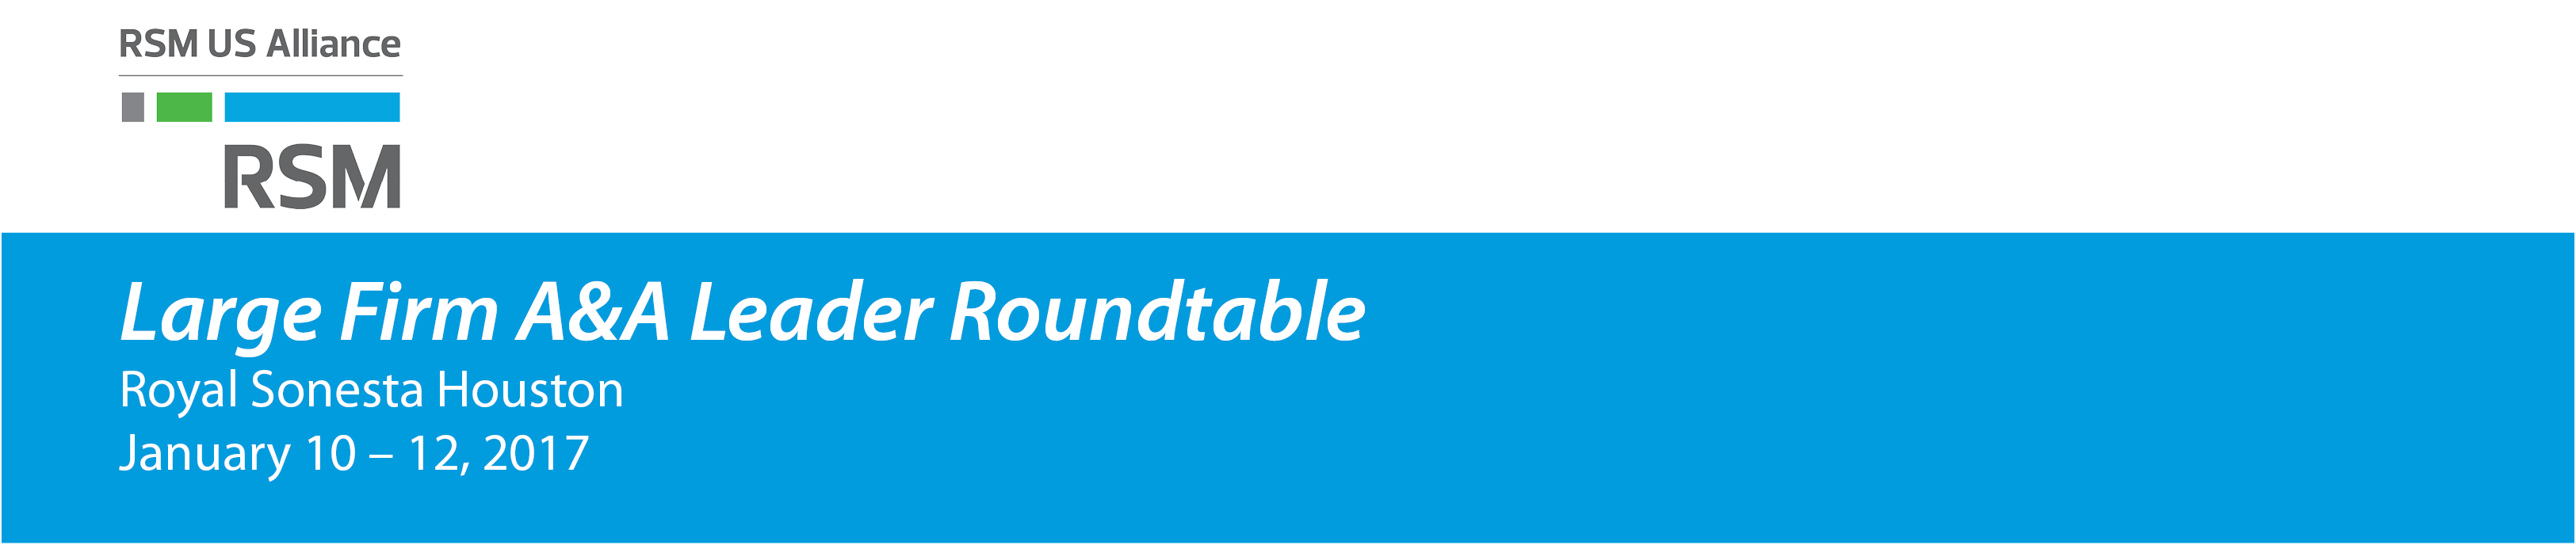 2017 Large Firm A&A Leader Roundtable